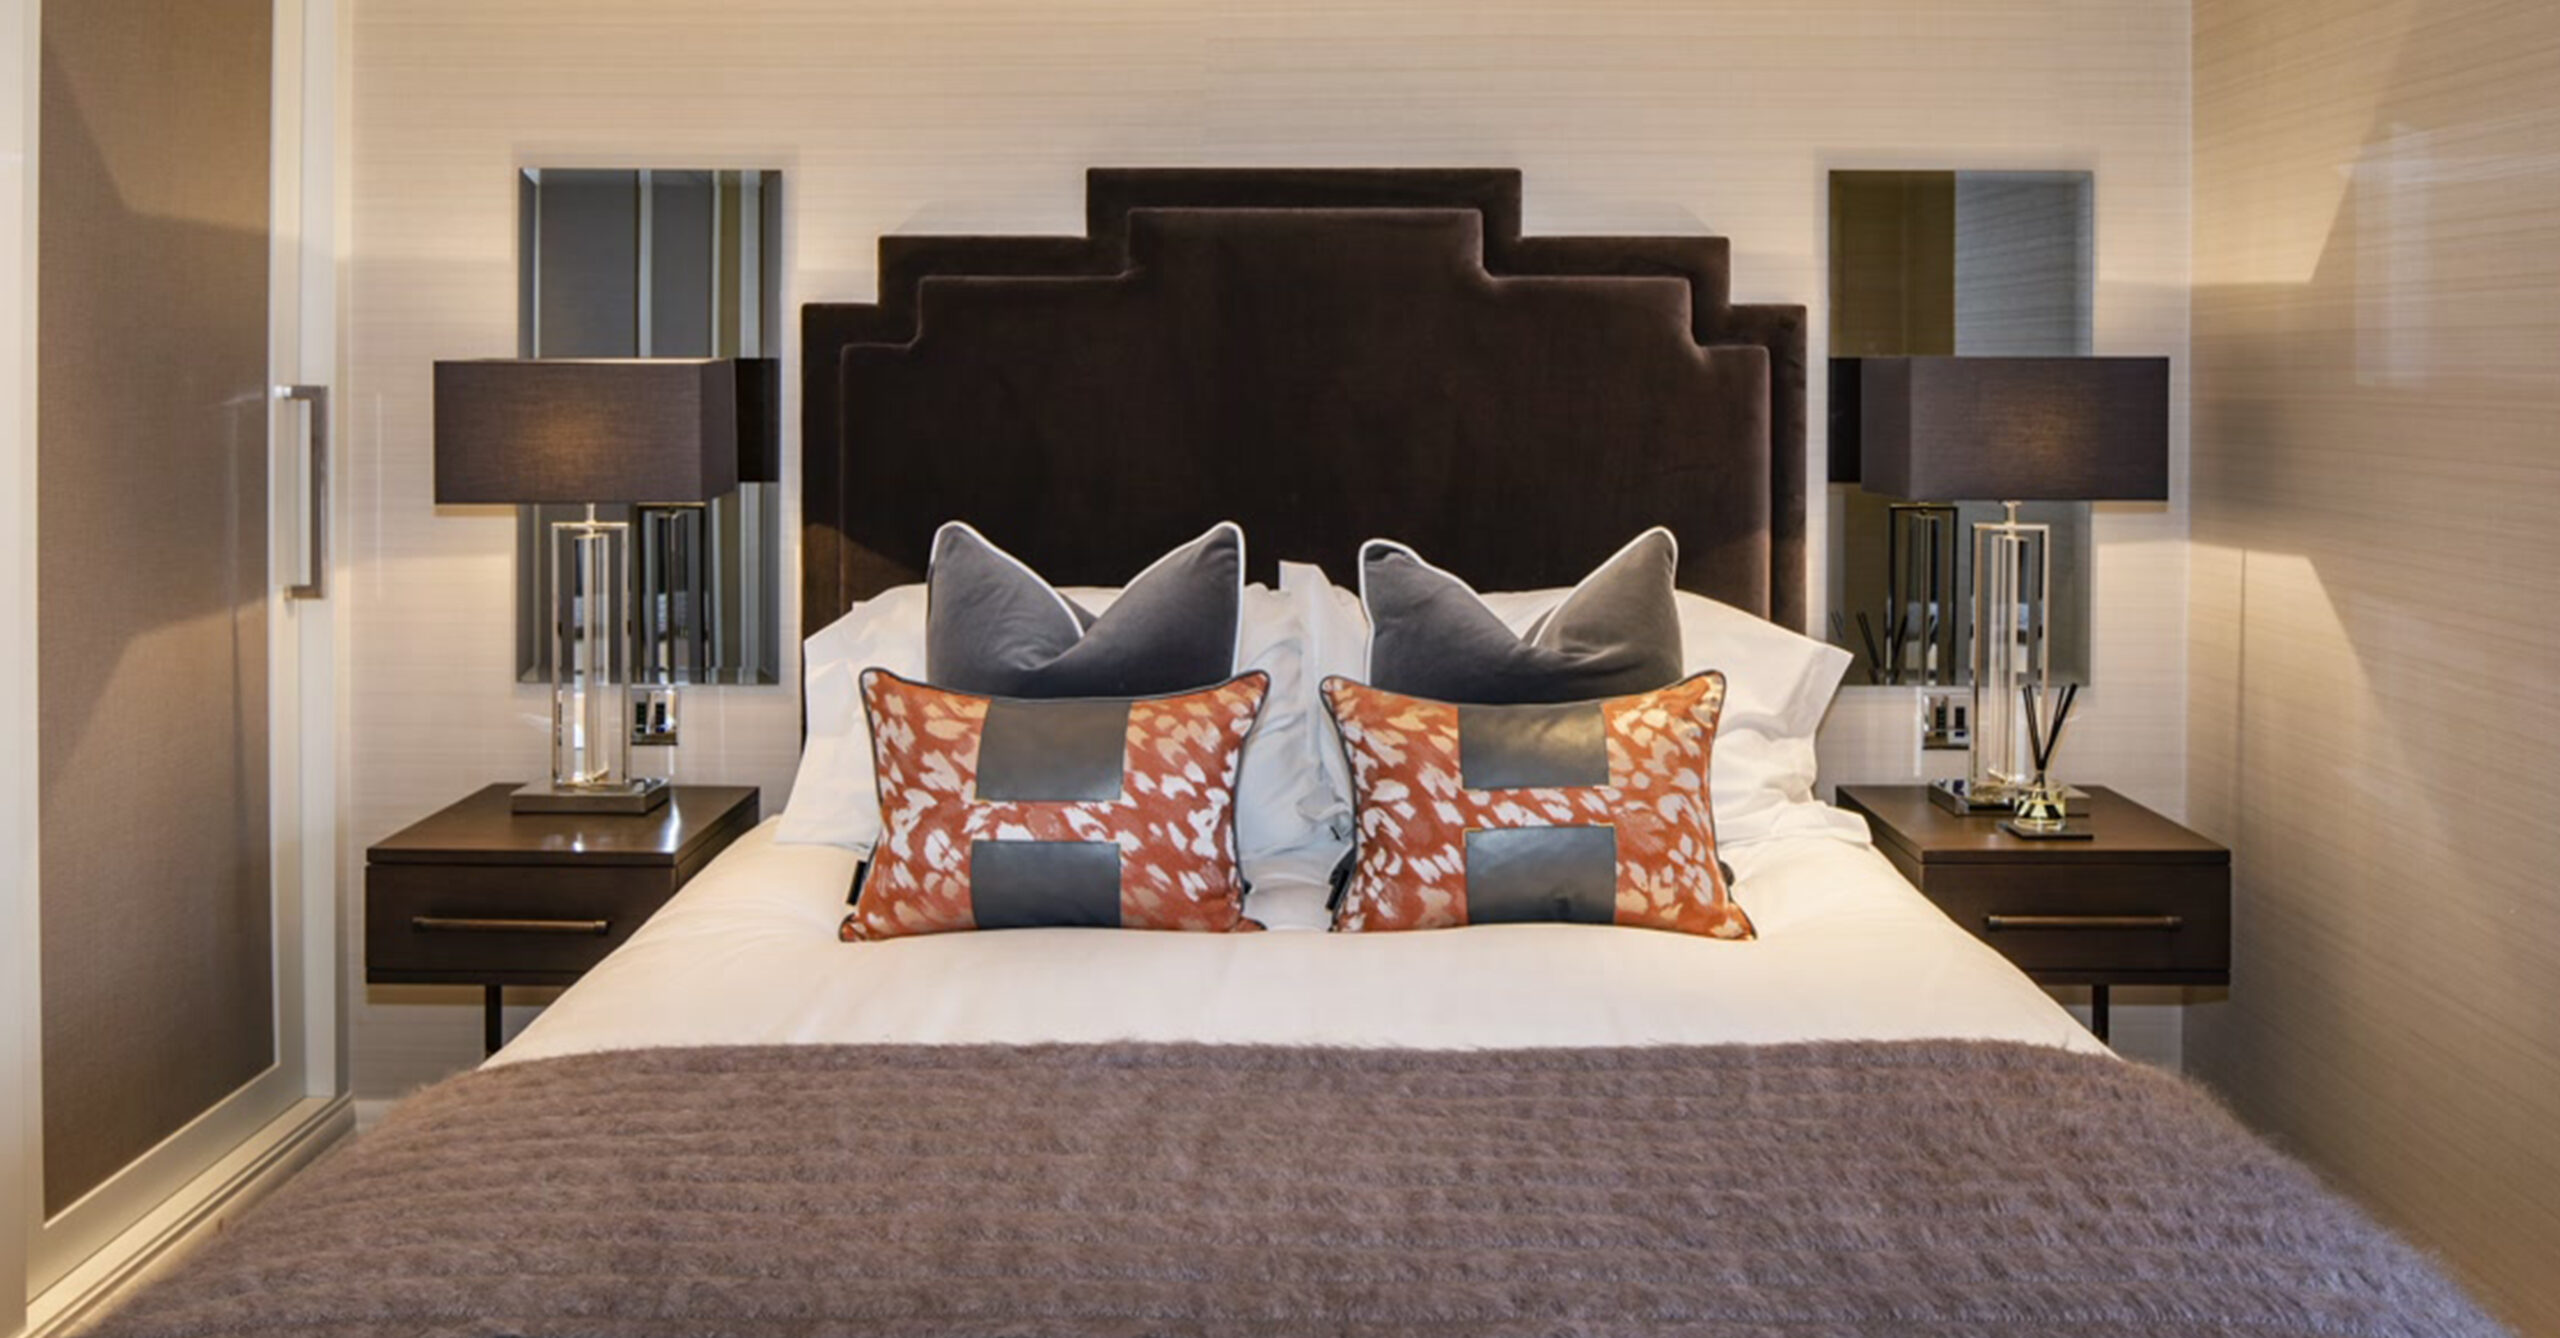 How To Design The Perfect Hotel Room Interior Design Tips Ward Co